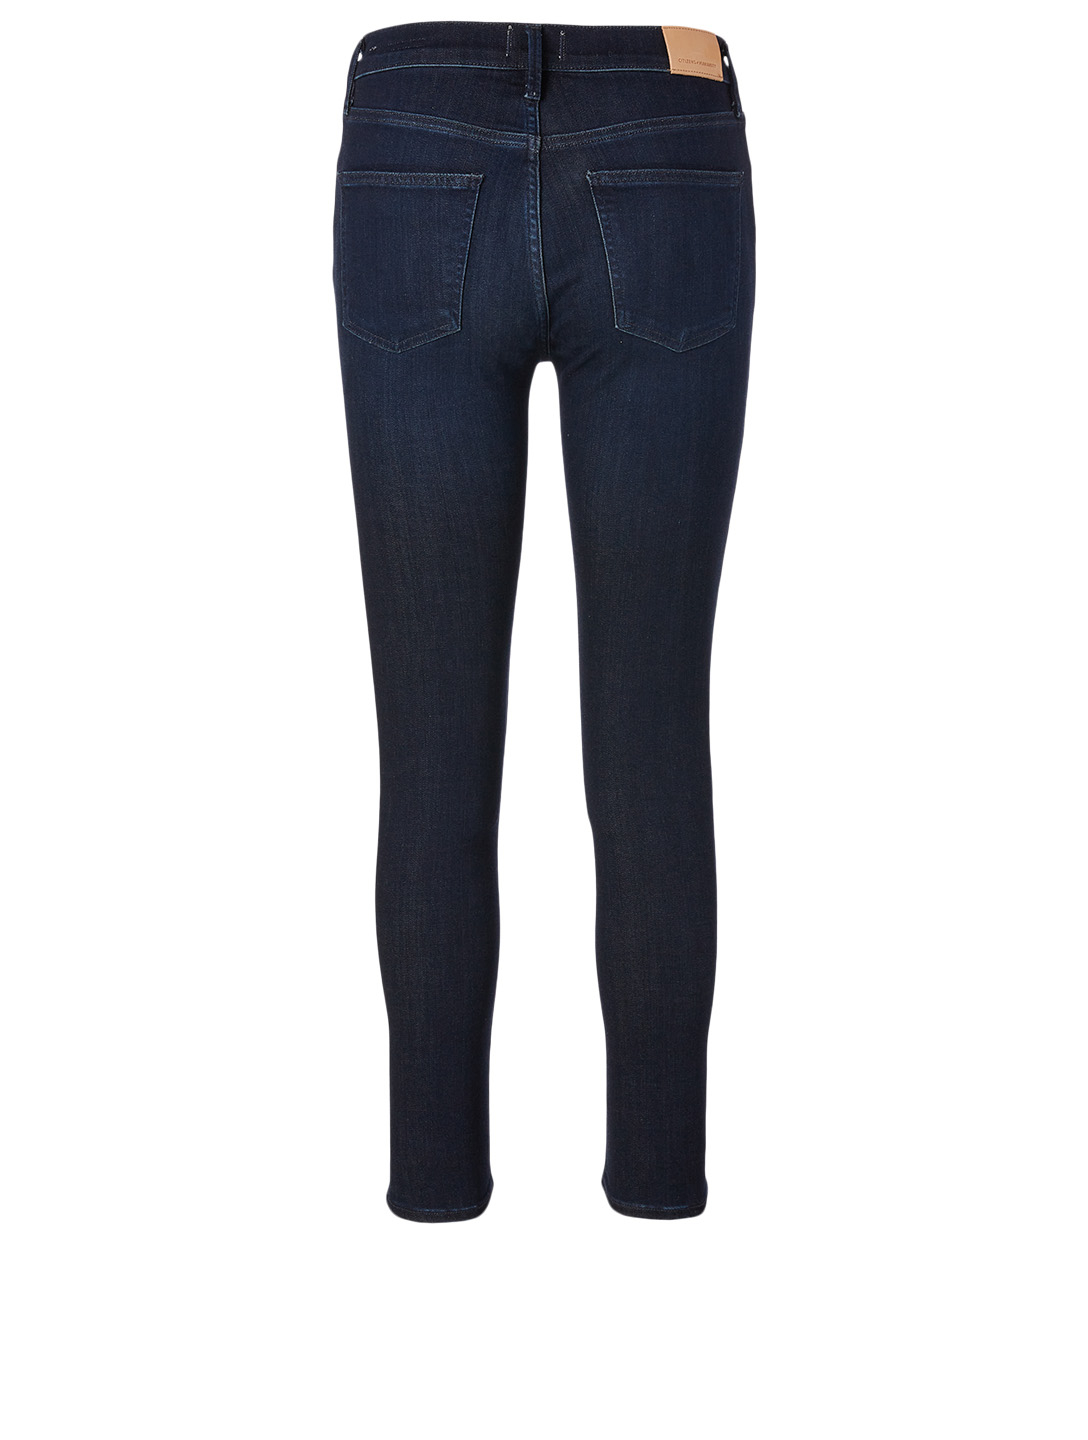 CITIZENS OF HUMANITY Rocket Ankle Skinny Jeans Women's Blue